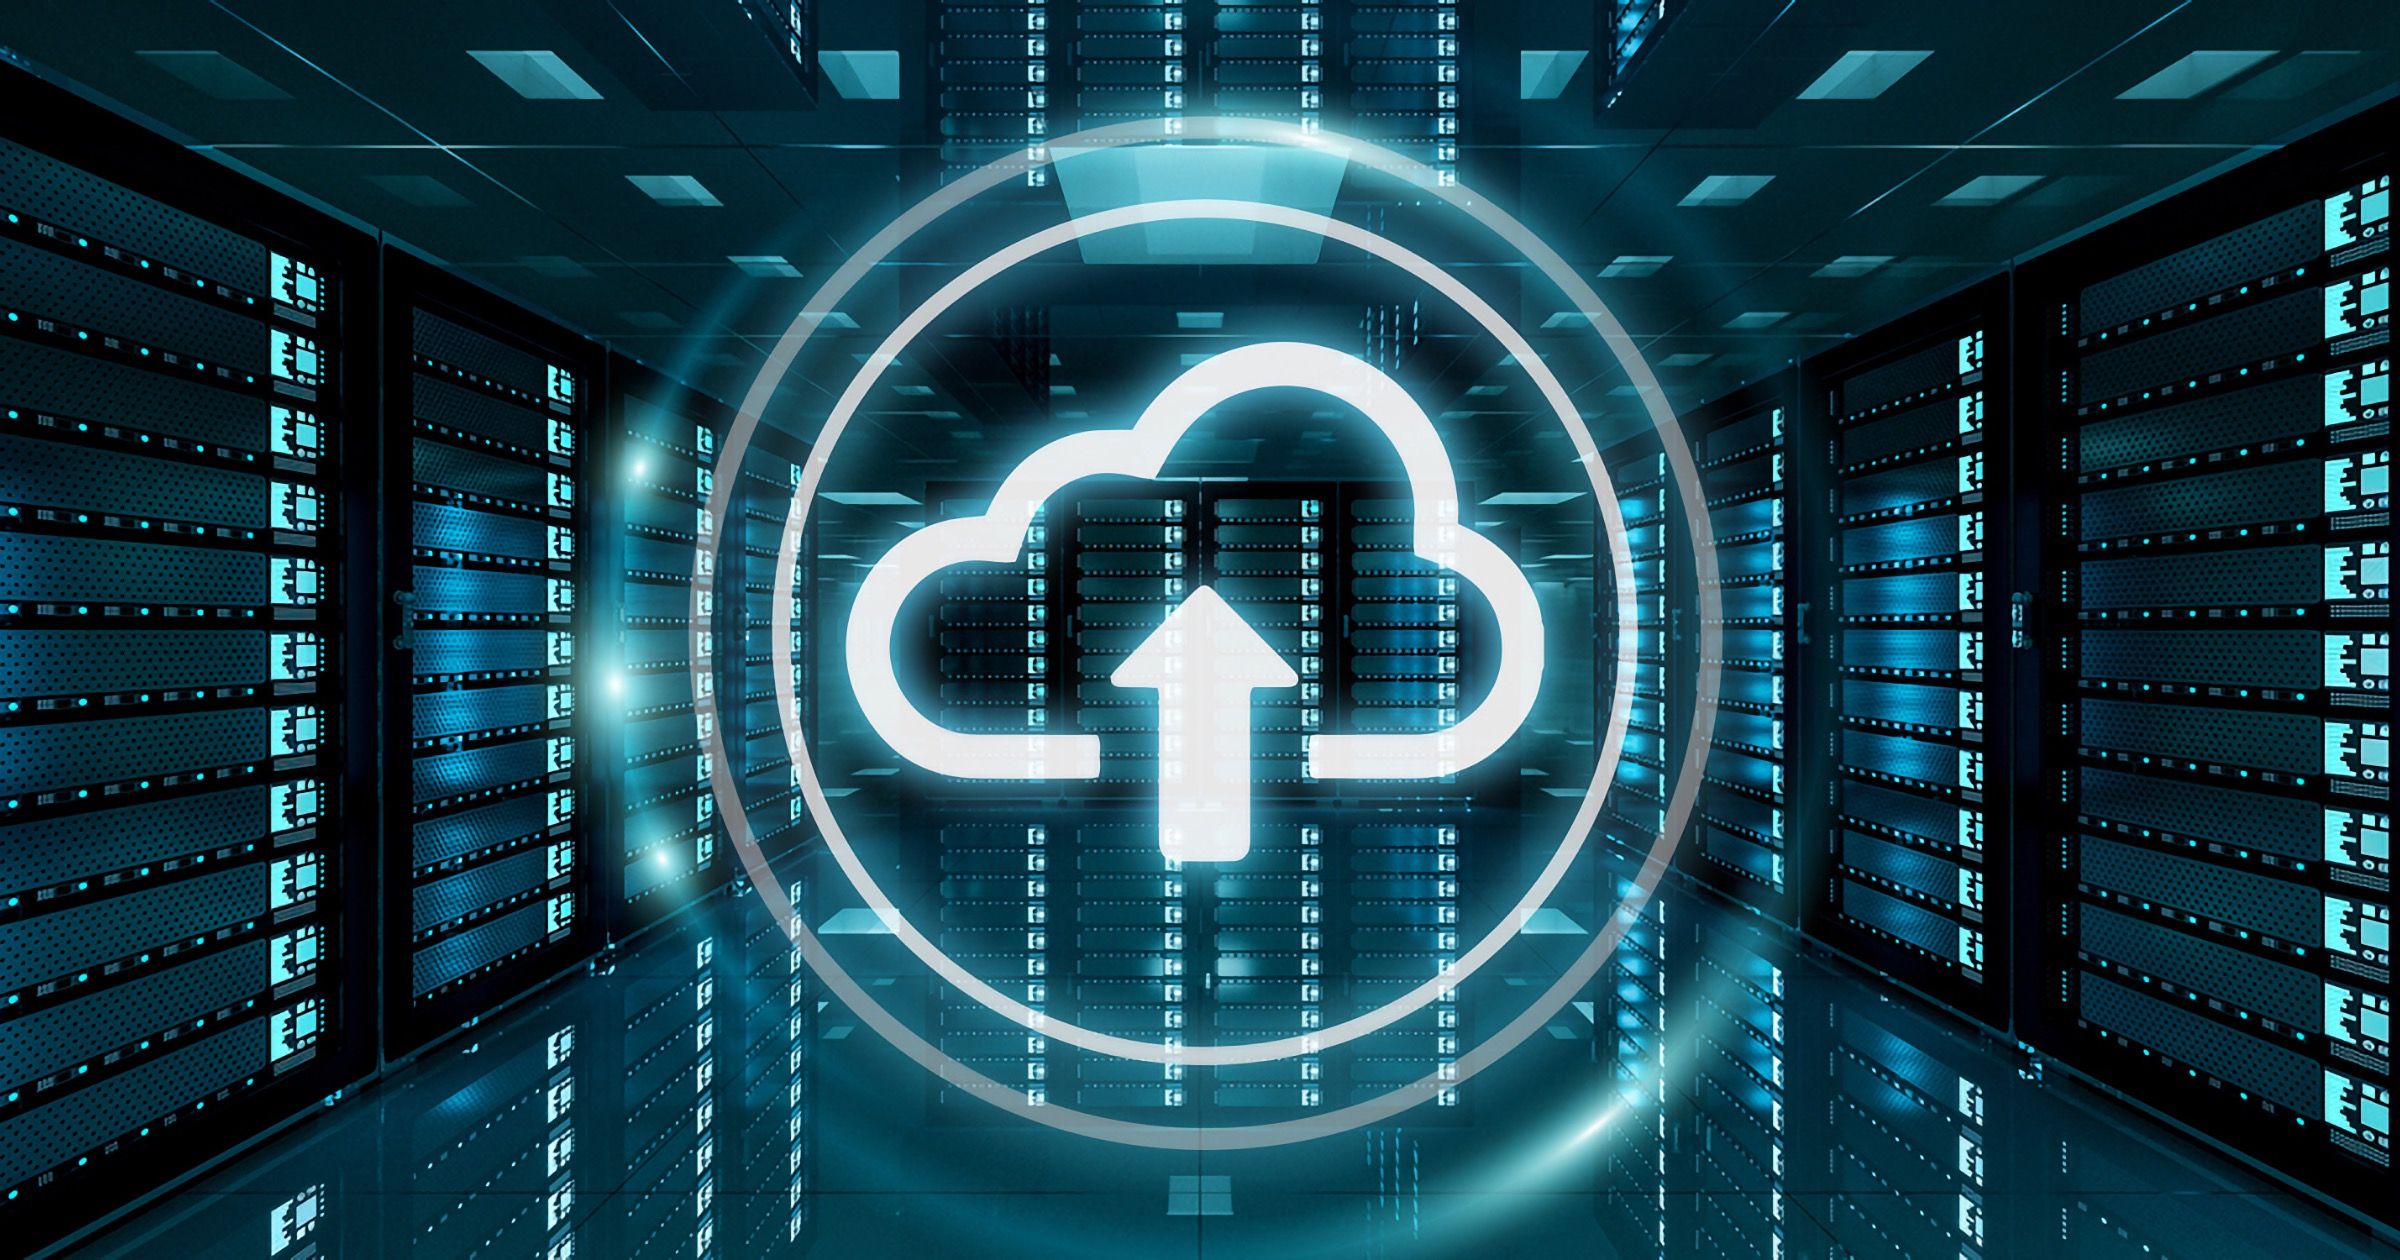 Cloud storage Icon in a data center